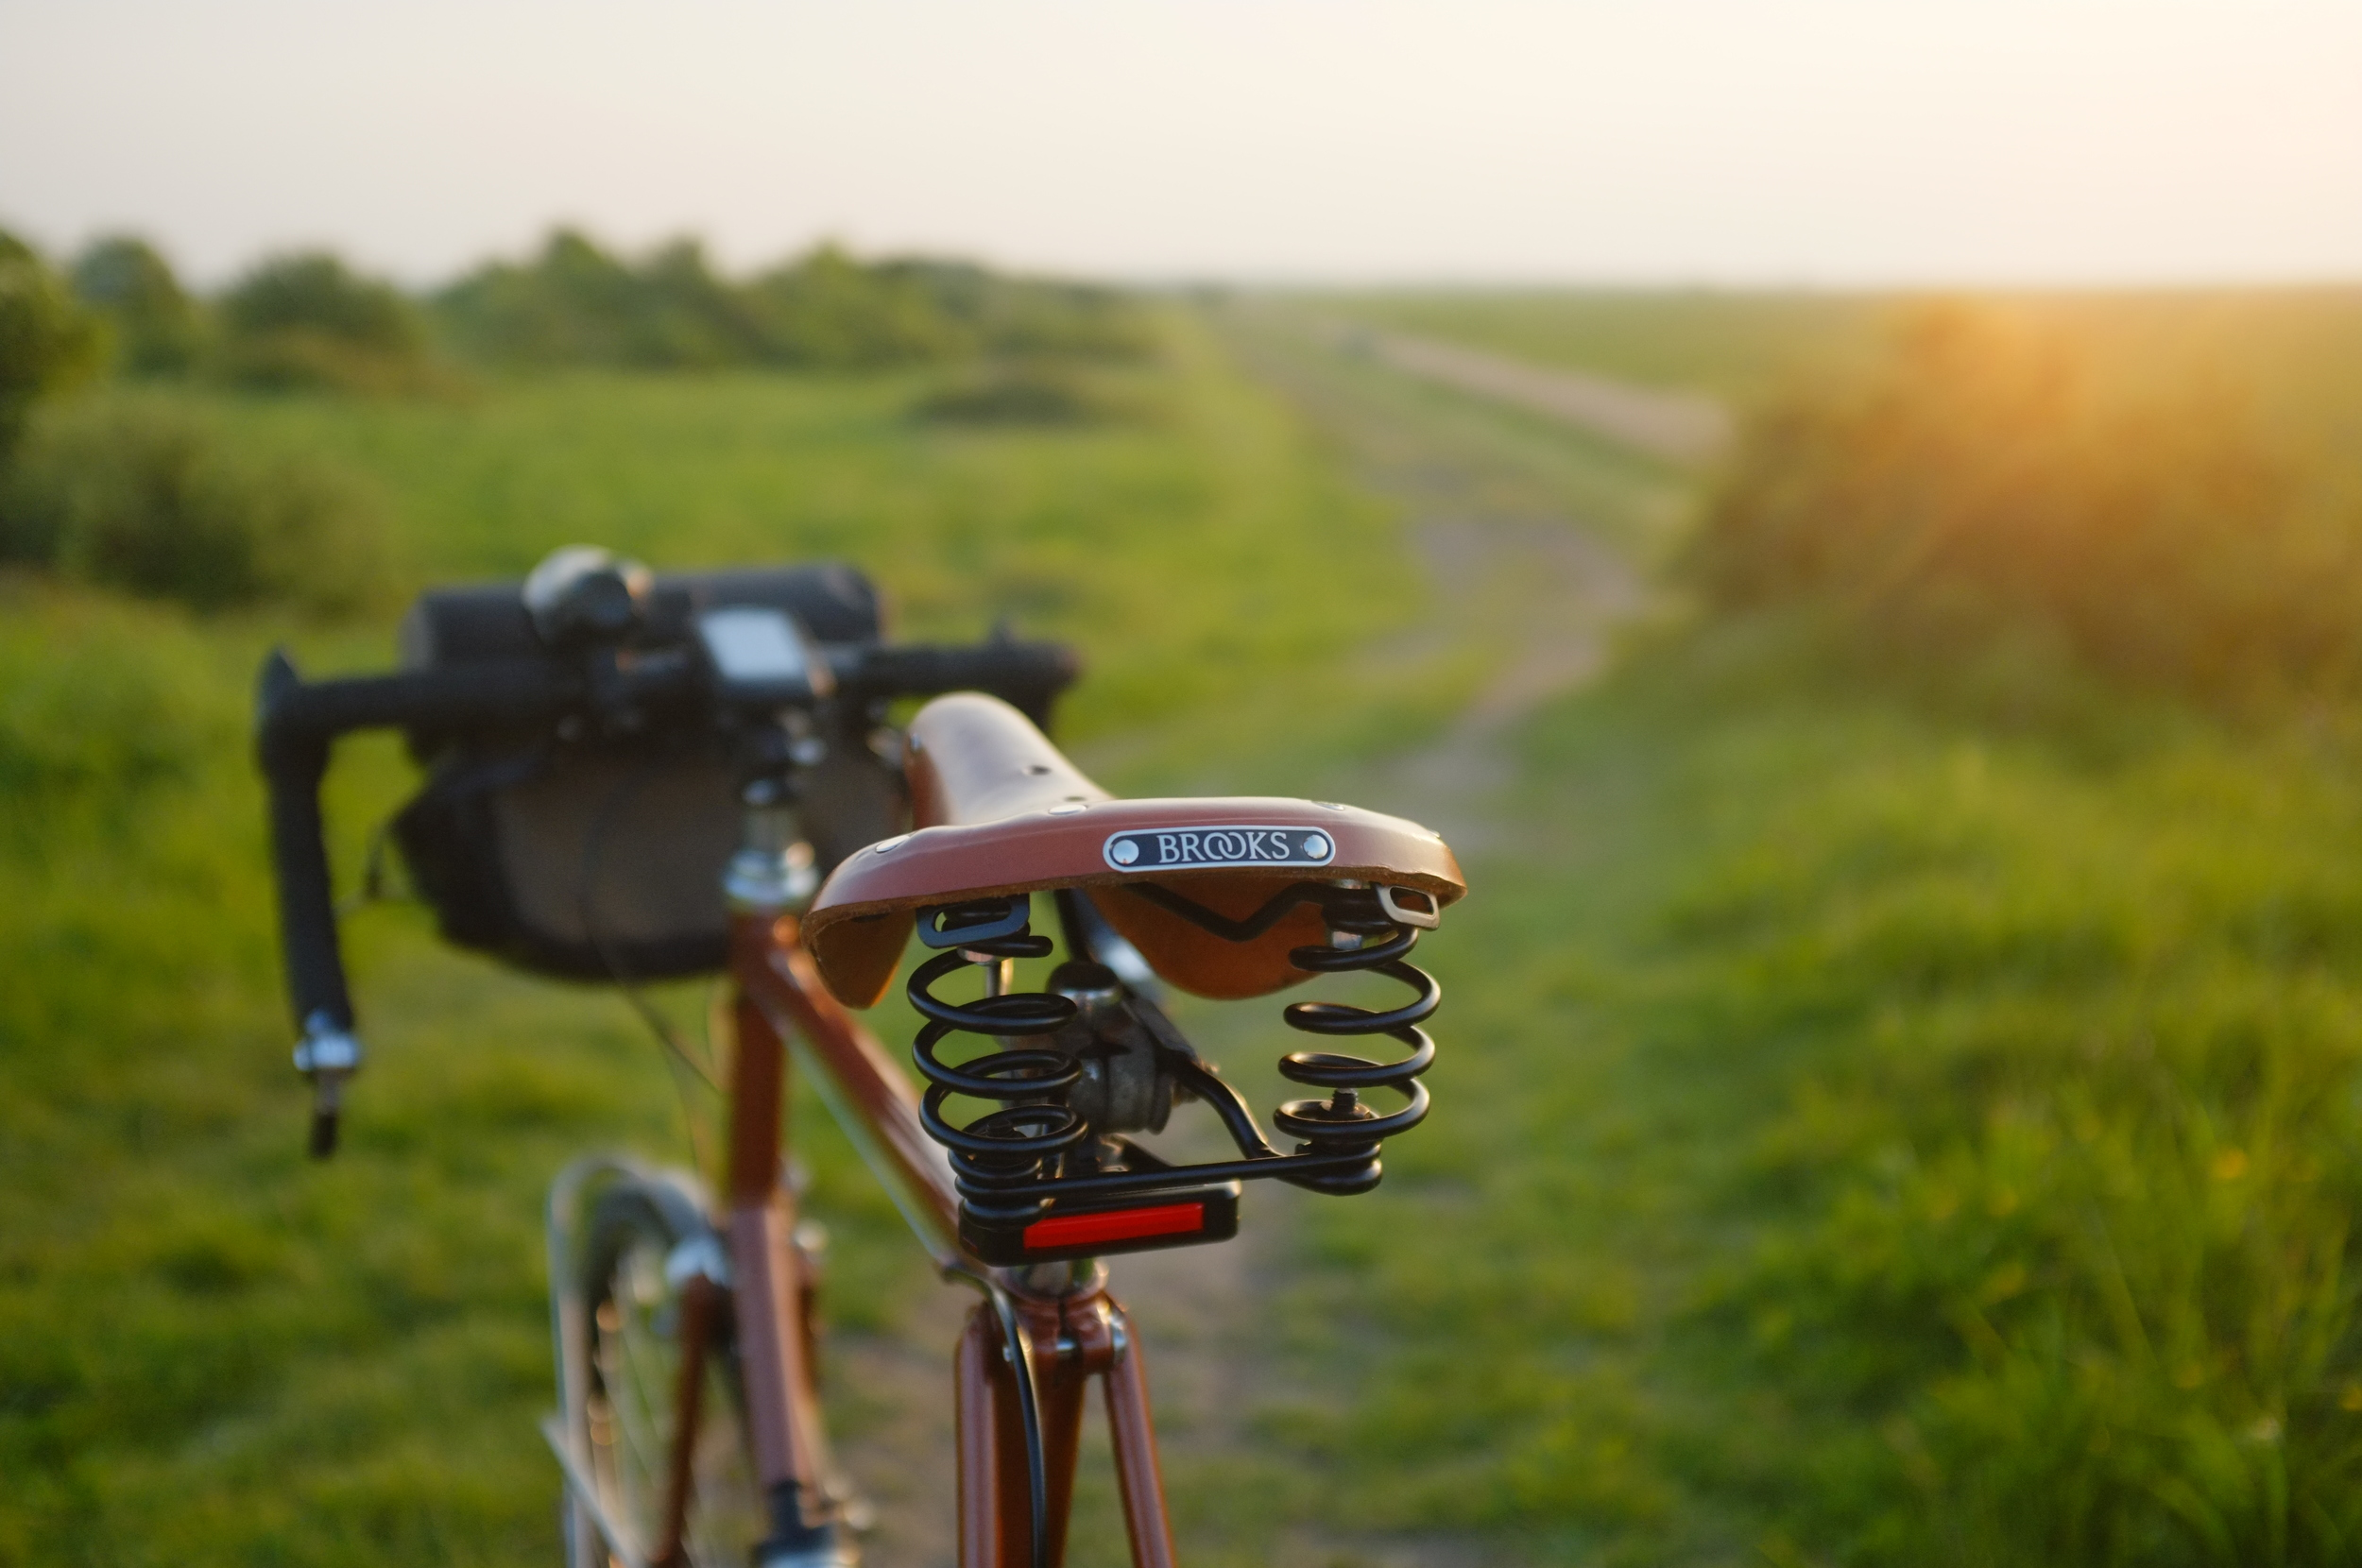 Brooks, brooks saddle, flyer, b17, bicycle touring, cycle touring, cycle gear, review, blog